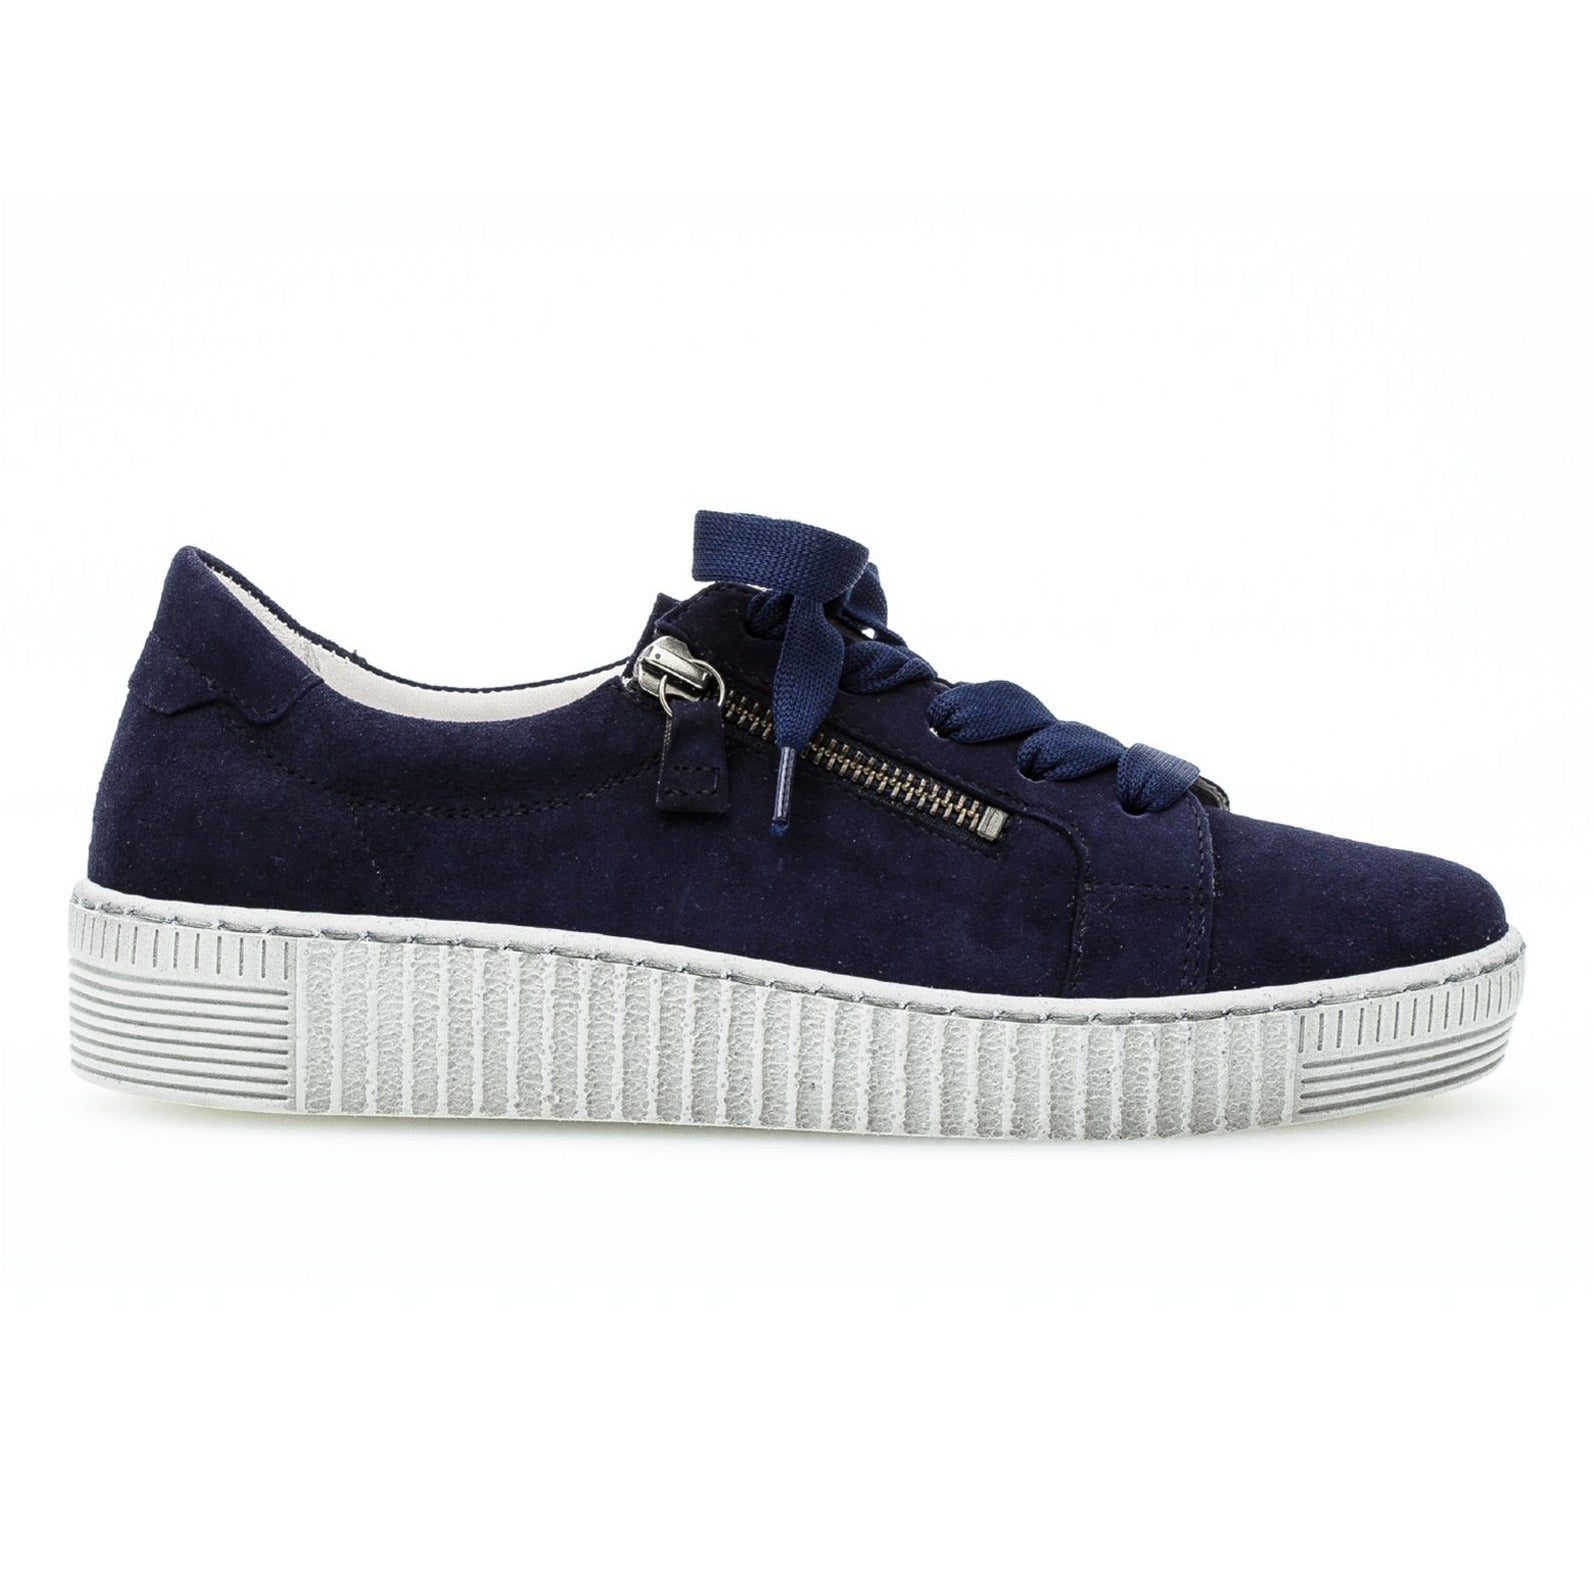 Gabor 63.334.16 in Navy suede outer view